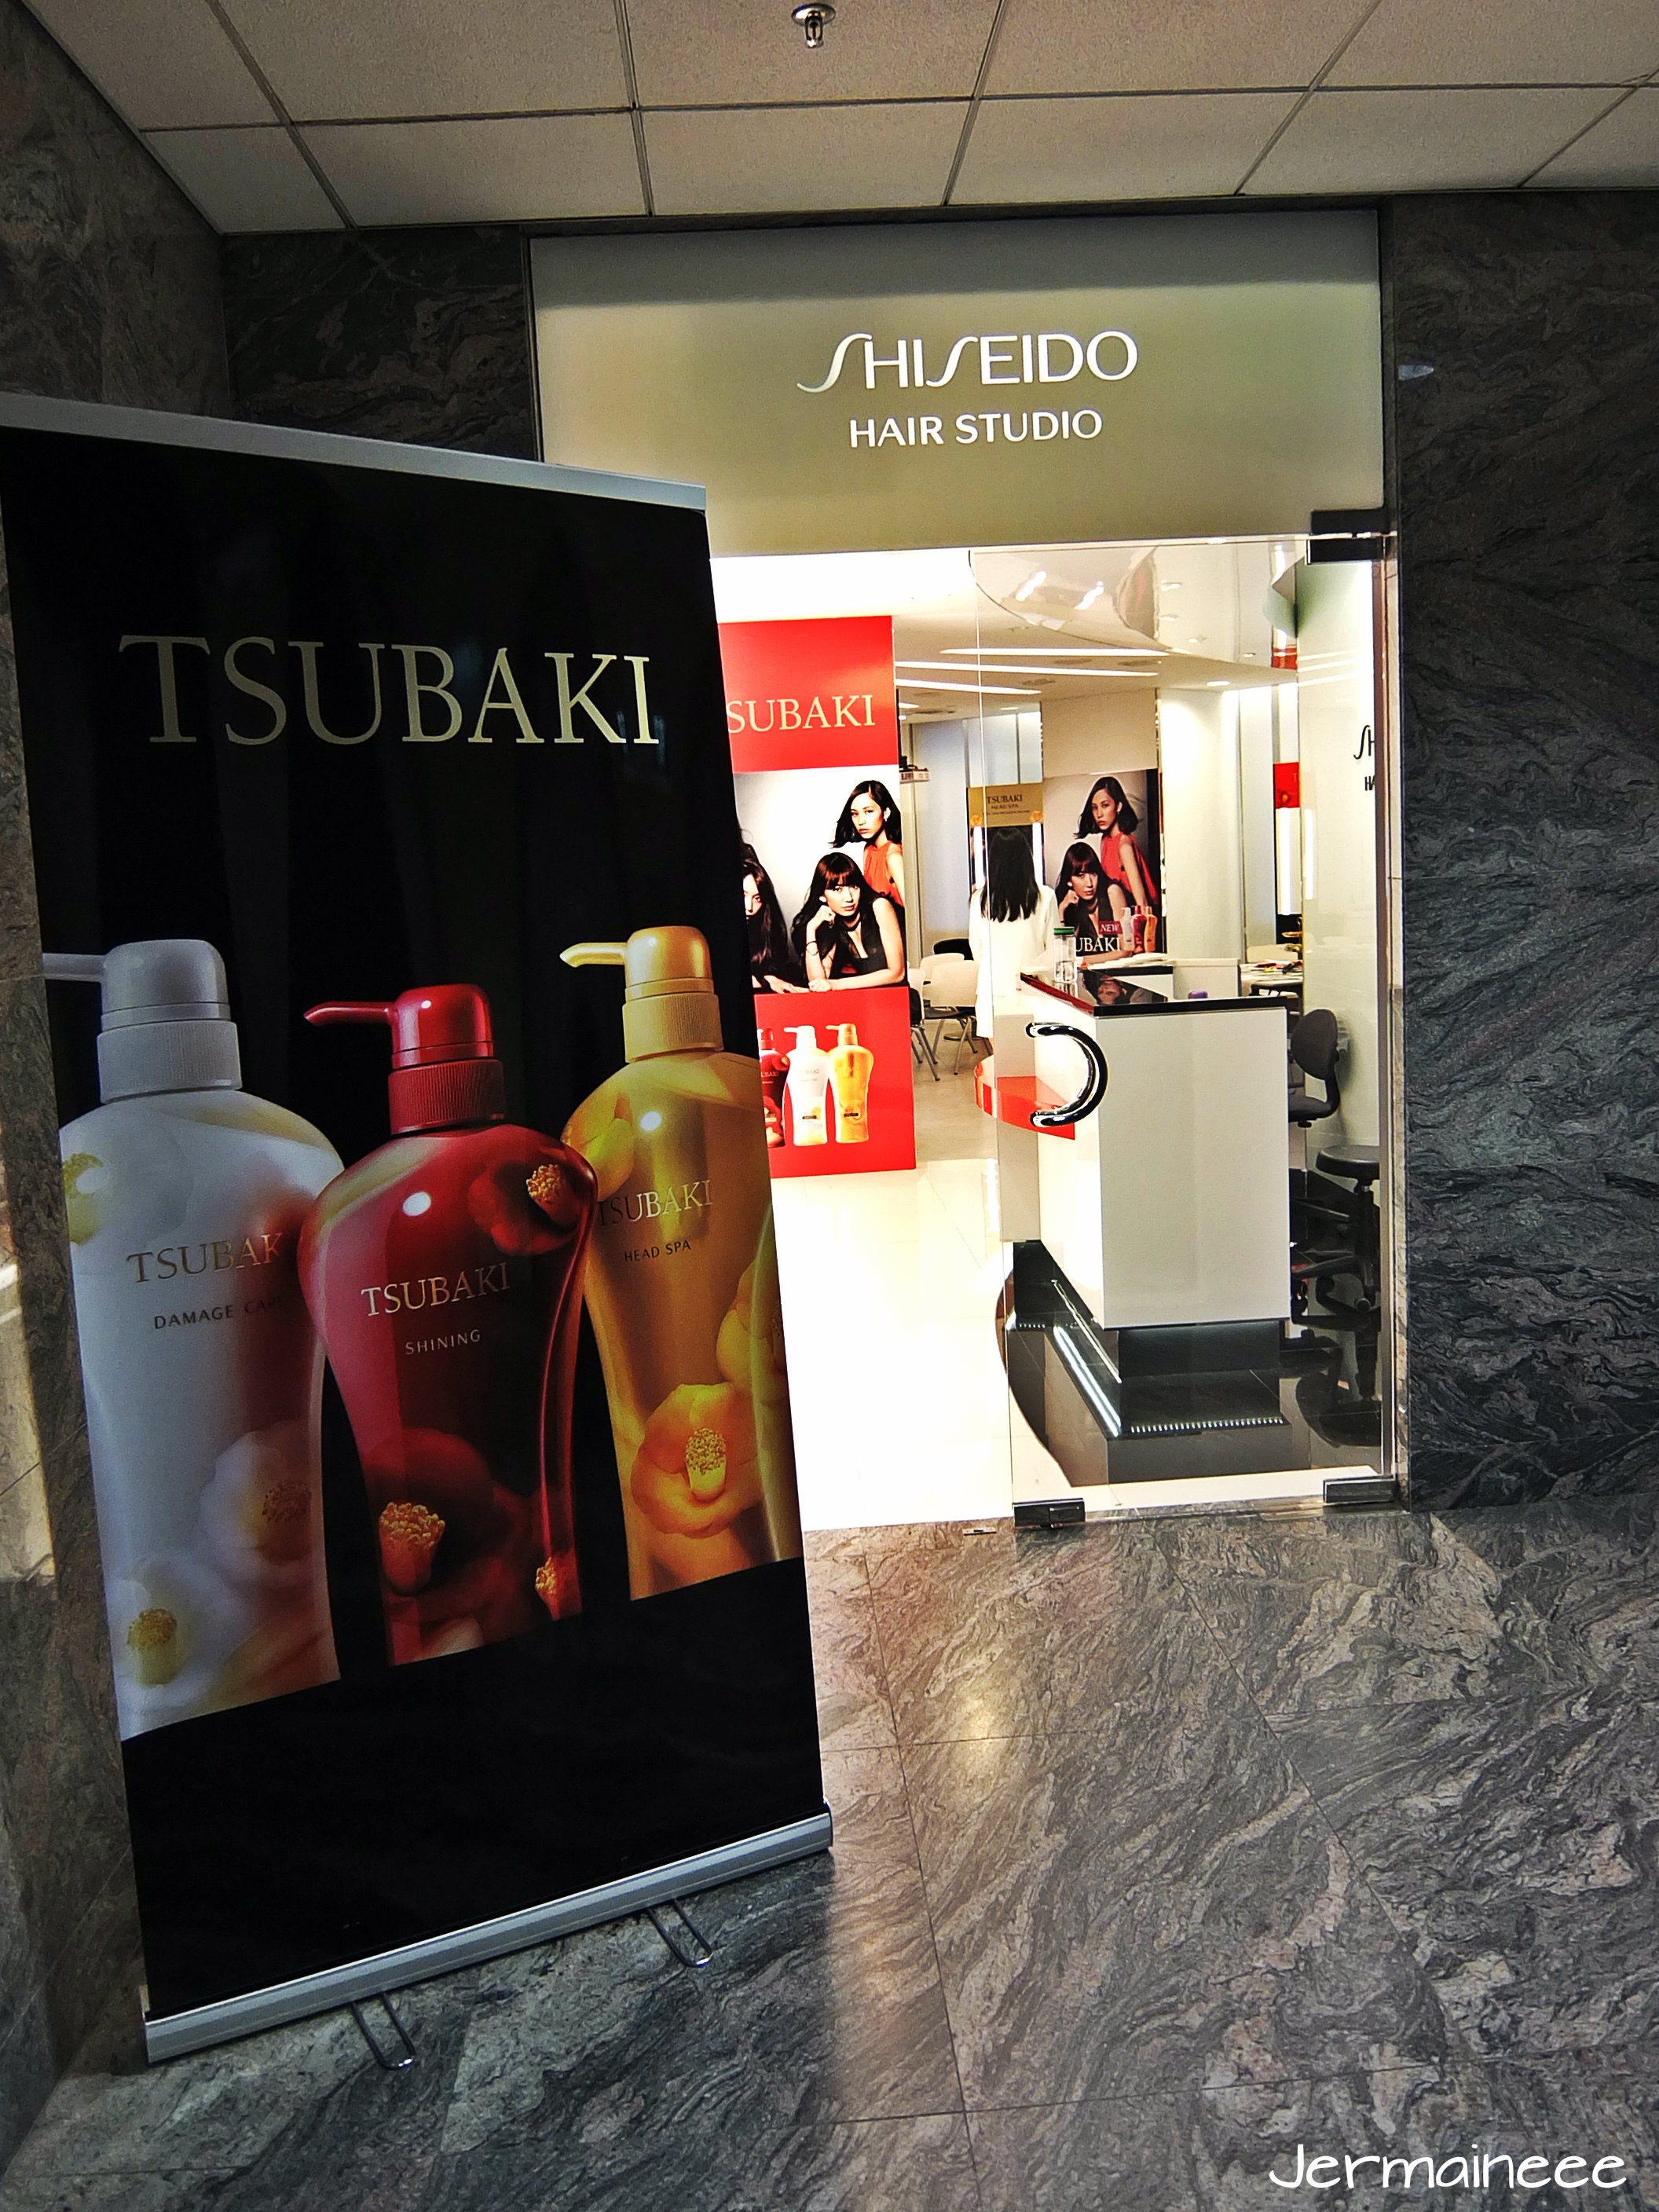 Event Sponsored Review Unveiling Shiseidos Latest Hair Care Shiseido Shampoo And Scalp Tsubaki A Brand Under Singapore Co Is Leading In Japan Ever Since Its Launch 2006 Total Number Of Shipments Over 270